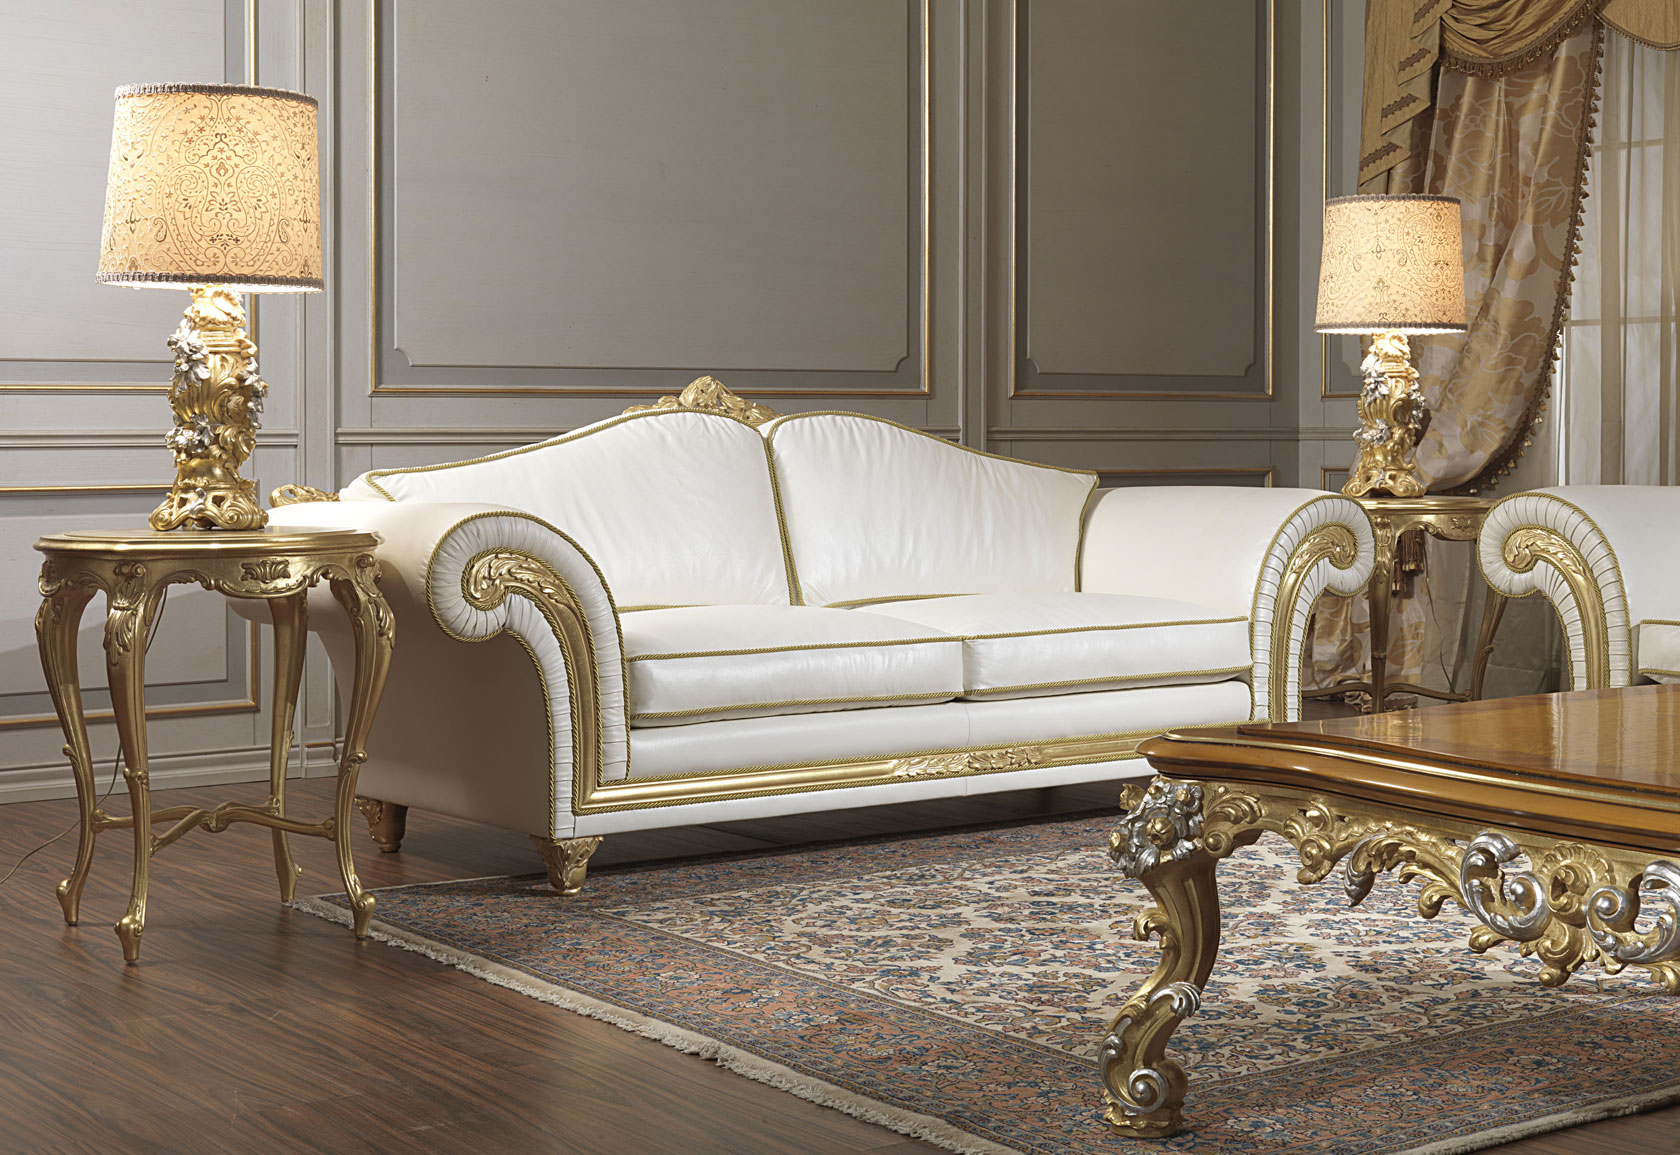 Classic sofa imperial in white leather vimercati classic for Classic furniture